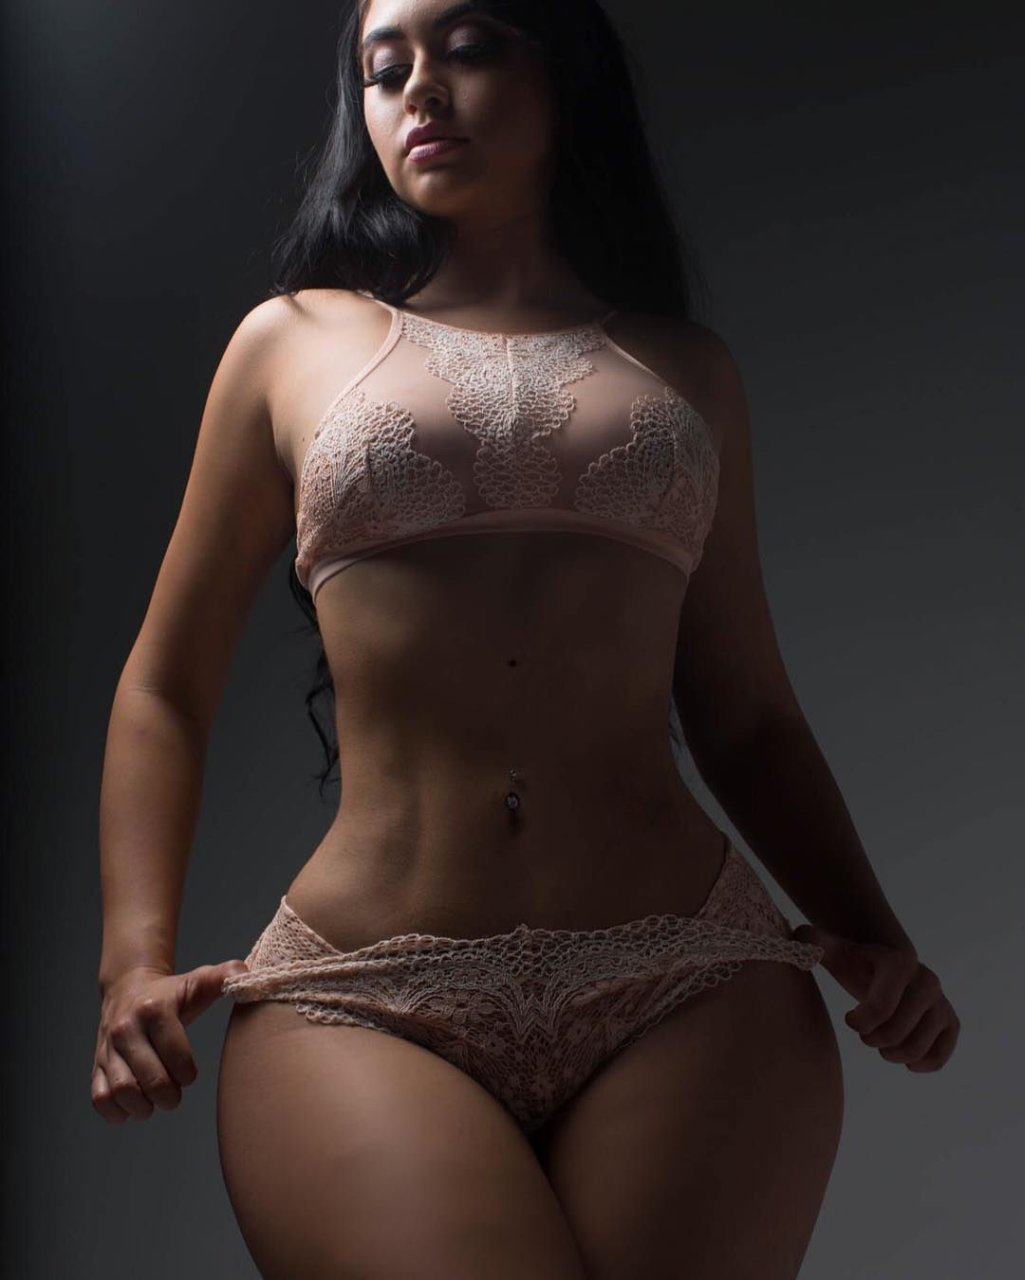 Tips On How To Gain Curves, Look Sexy Without Losing Weight